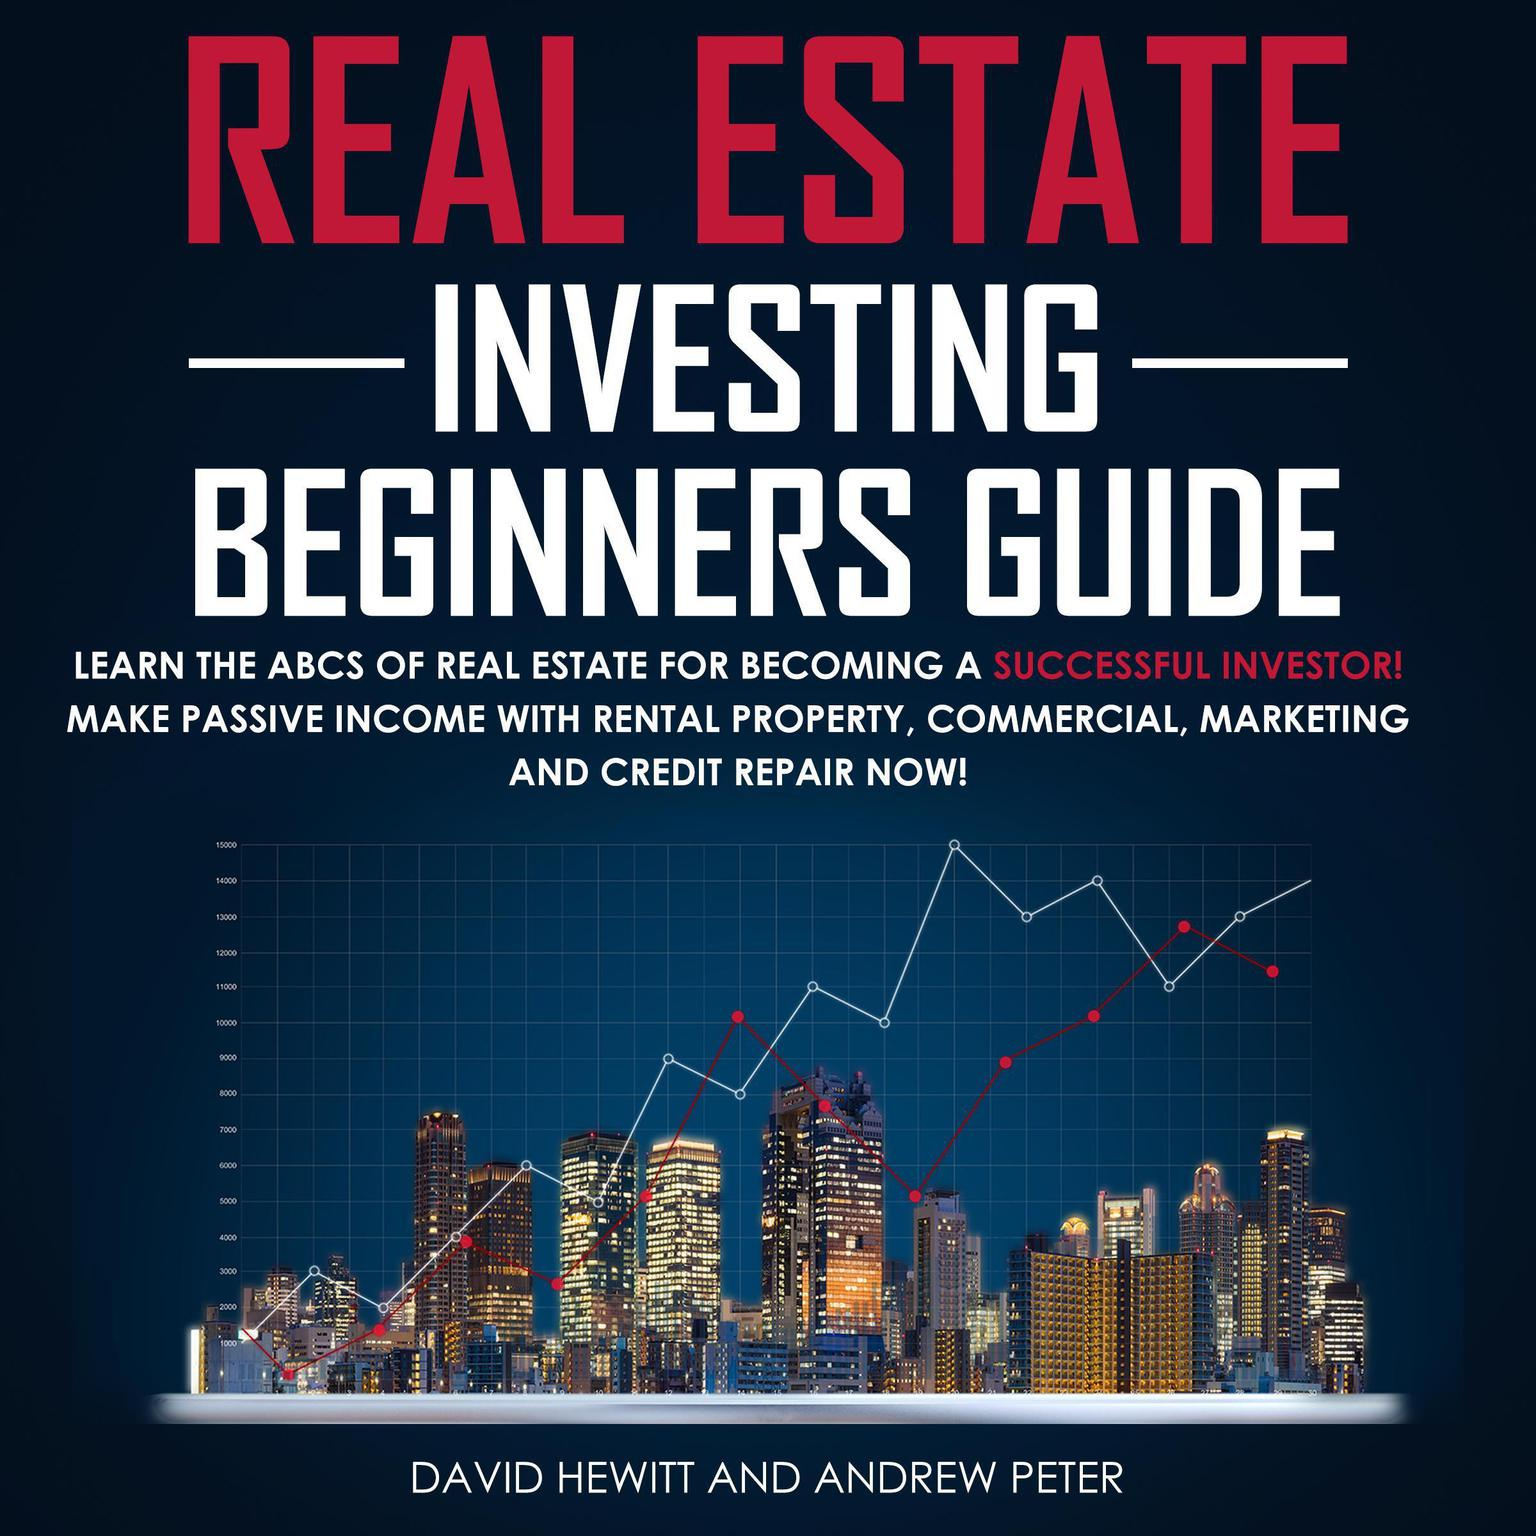 Real Estate Investing Beginners Guide: Learn the ABCs of Real Estate for Becoming a Successful Investor! Make Passive Income with Rental Property, Commercial, Marketing, and Credit Repair Now! Audiobook, by Andrew Peter